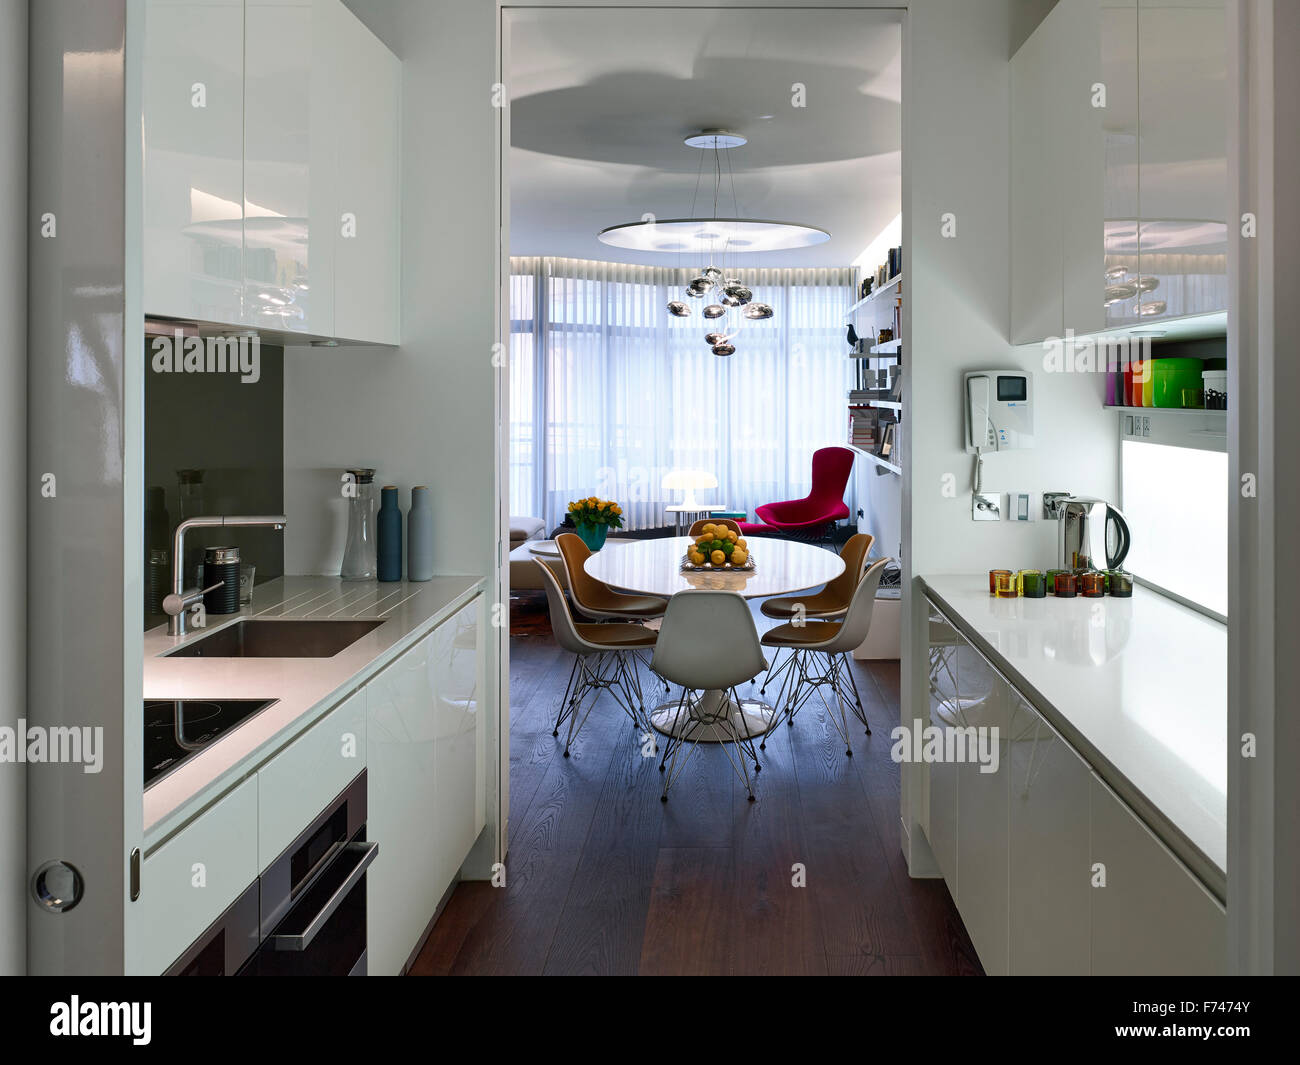 Kitchen diner in Compass Court Apartment, Shad Thames, London, England, UK - Stock Image